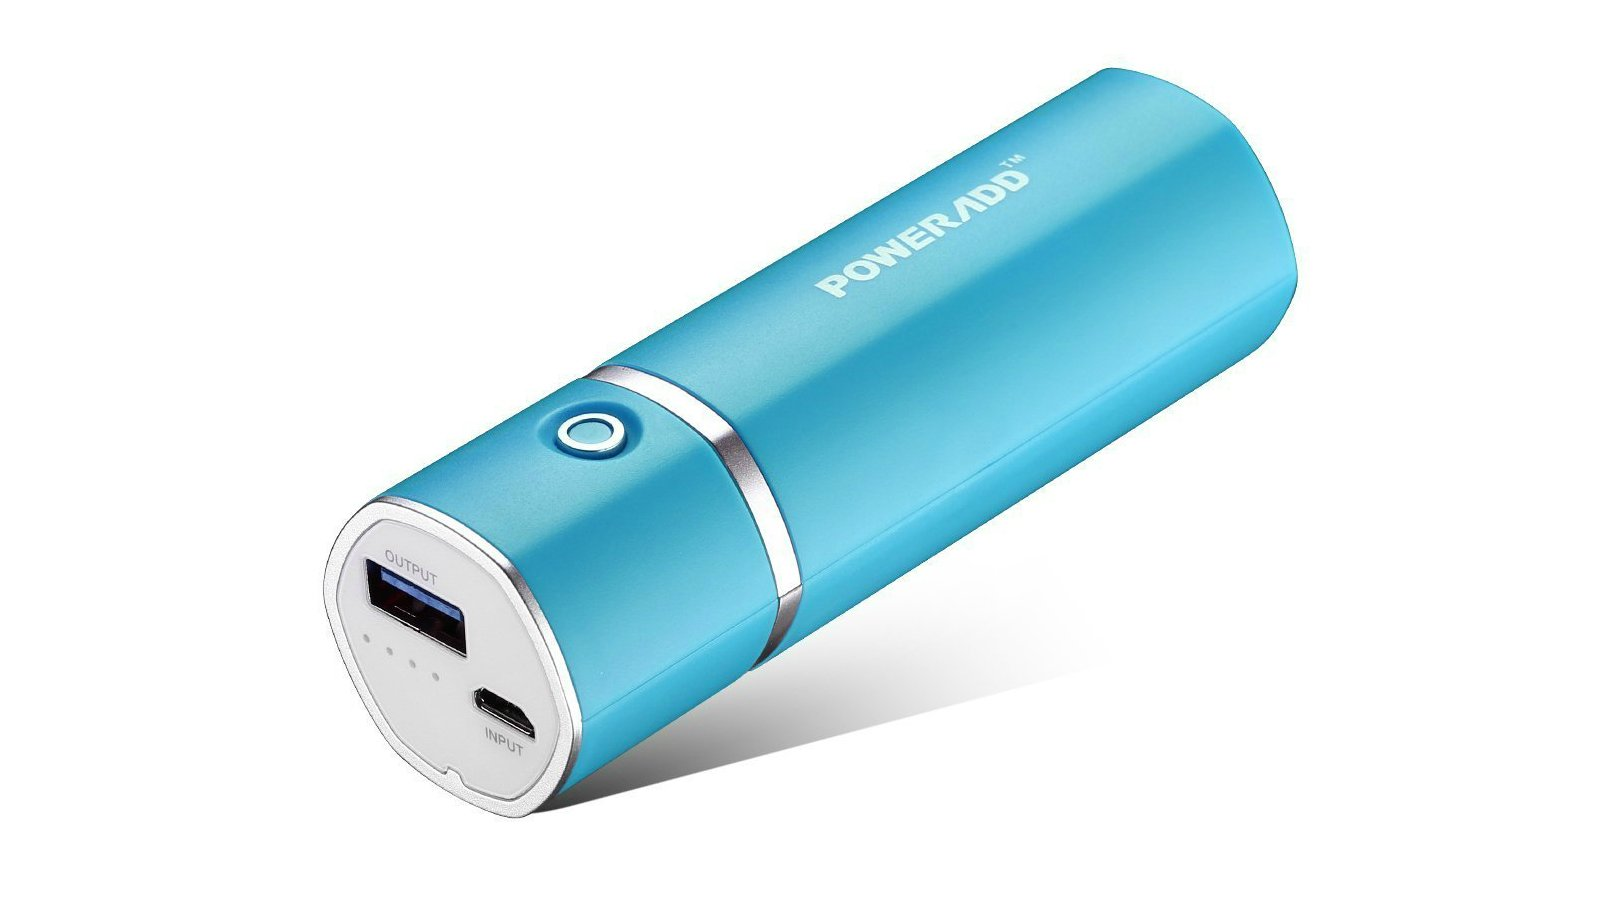 Samsung Galaxy S9 Free Anker Powerbank Mah 10000 Black Best Power Banks In The Uk 2018 Top Portable Chargers You Can Poweradd Slim2 Looks Like A Bulked Up Version Of Lipstick Sized Charger Although With Its 99mm Long 33mm Diameter Cylinder Youd Be Dealing